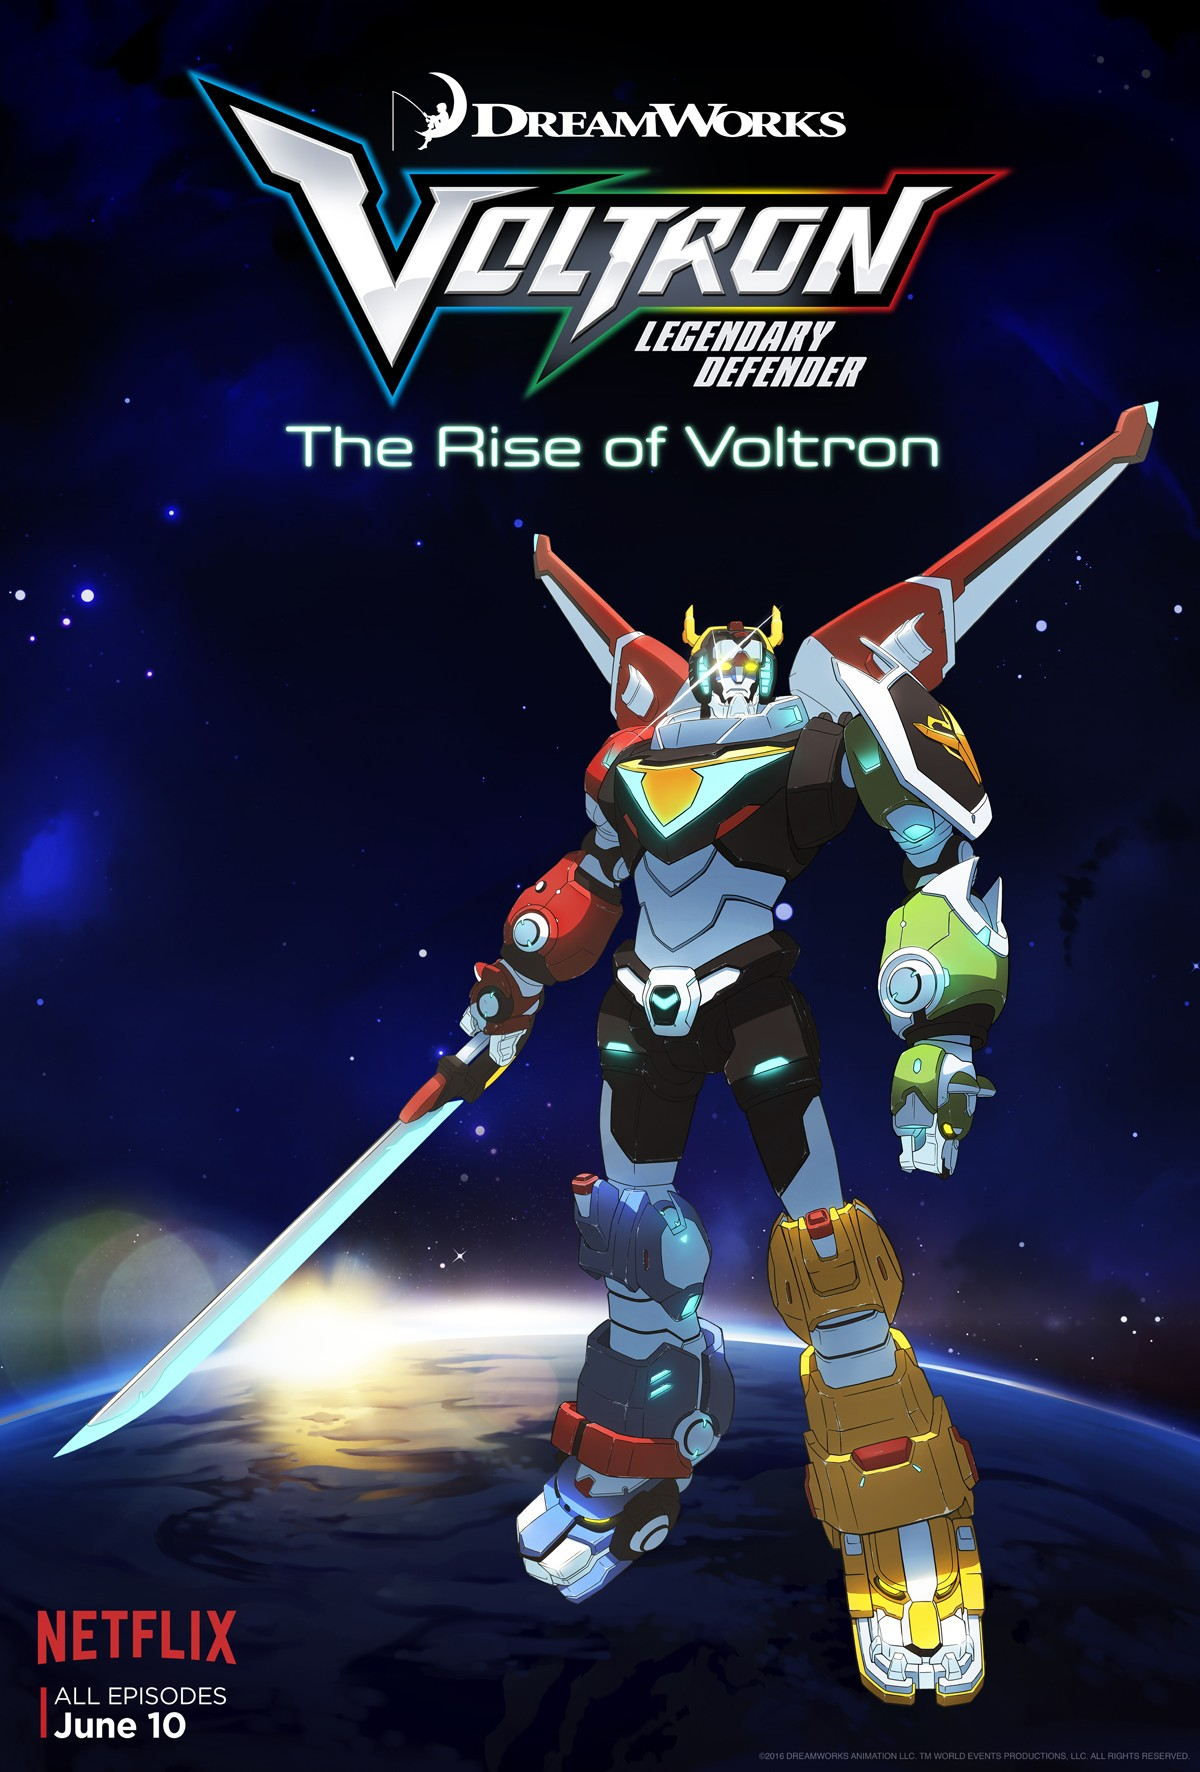 Voltron Wallpapers Comics Hq Voltron Pictures 4k Wallpapers 2019